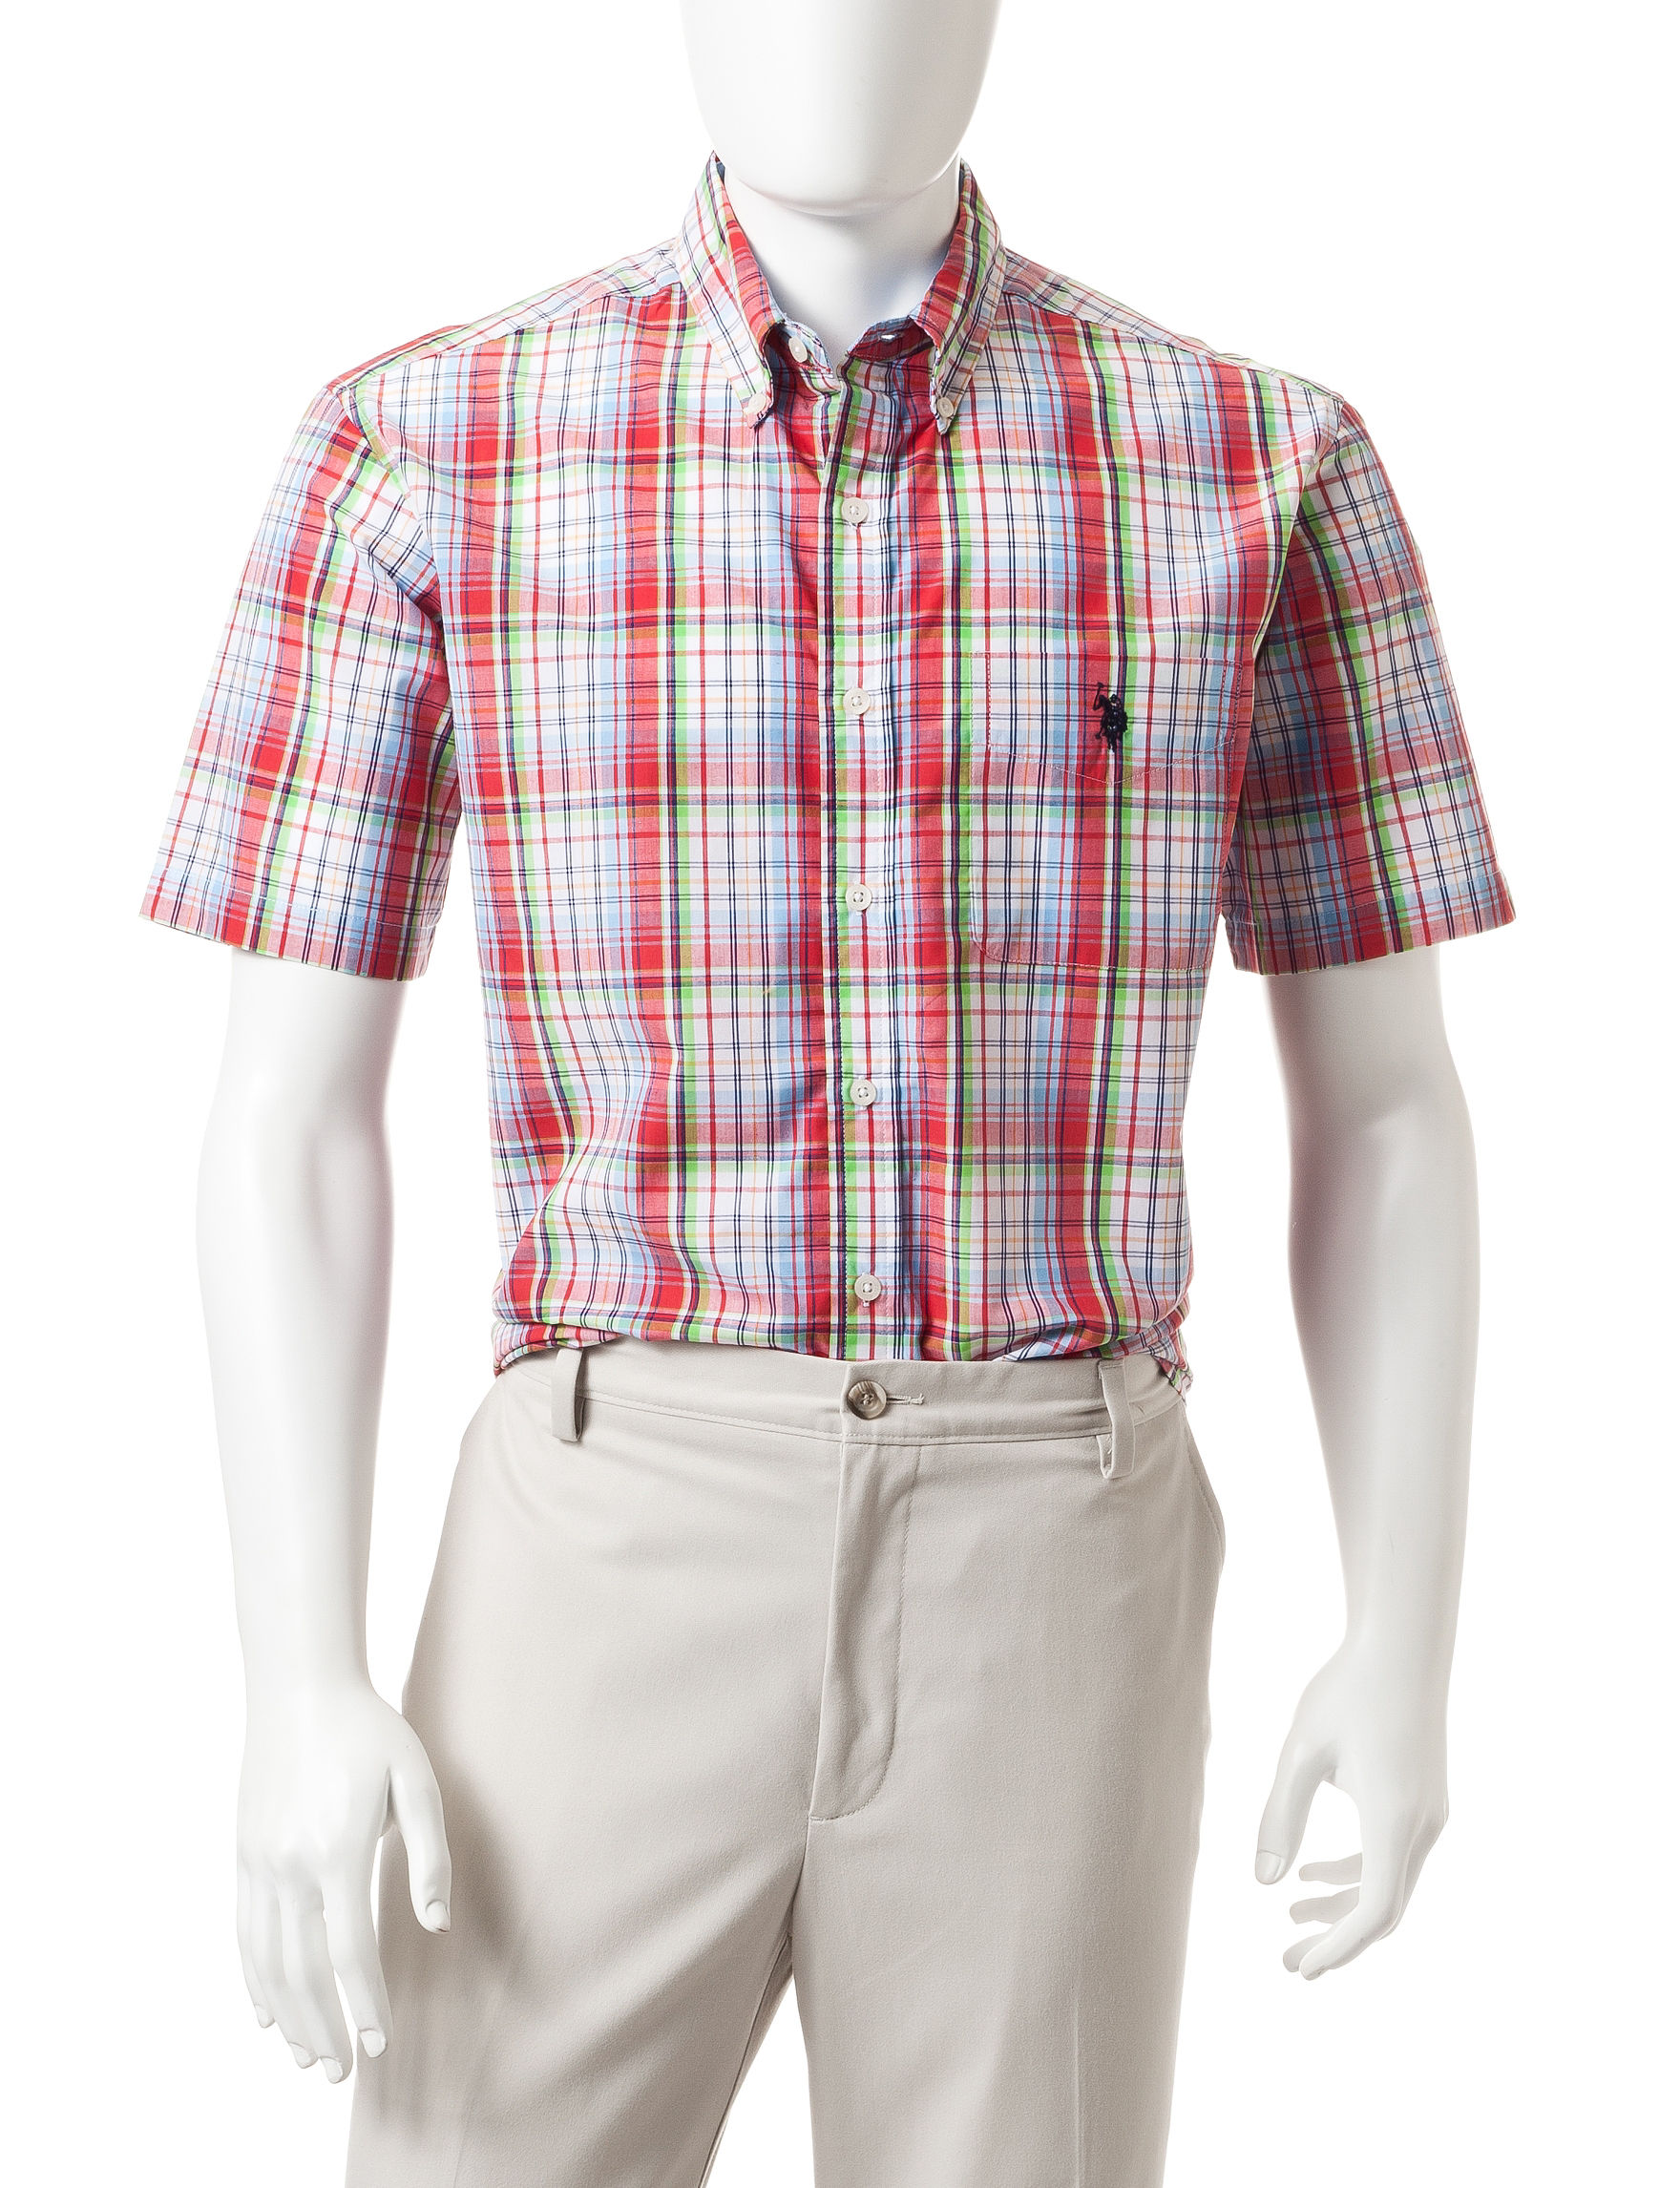 U.S. Polo Assn. Pink Casual Button Down Shirts